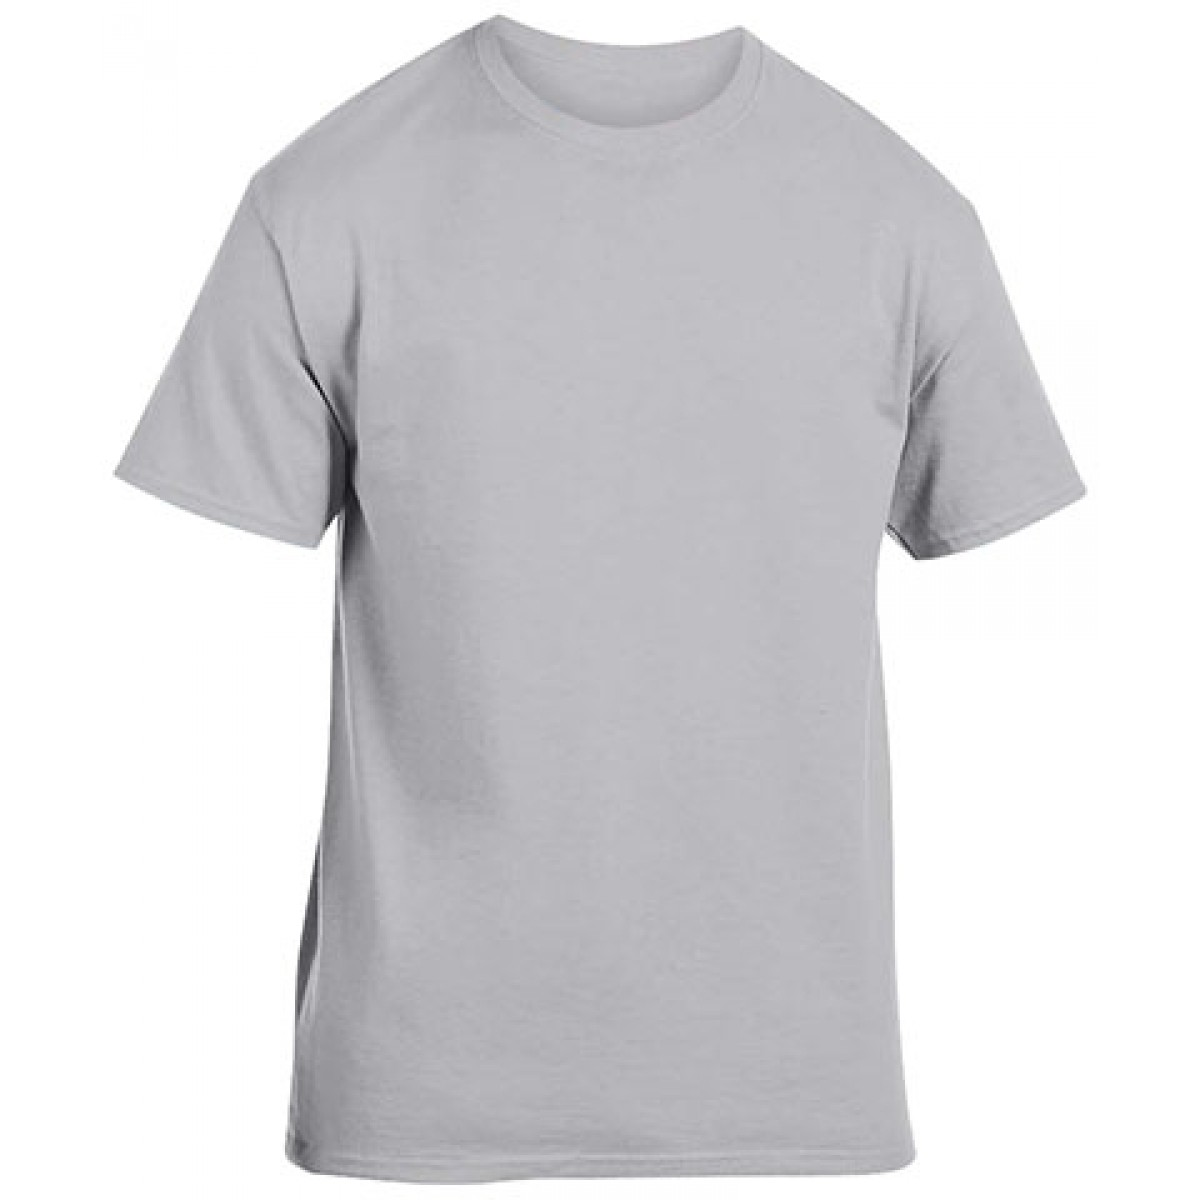 Cotton Short Sleeve T-Shirt Gray-Gray -YS